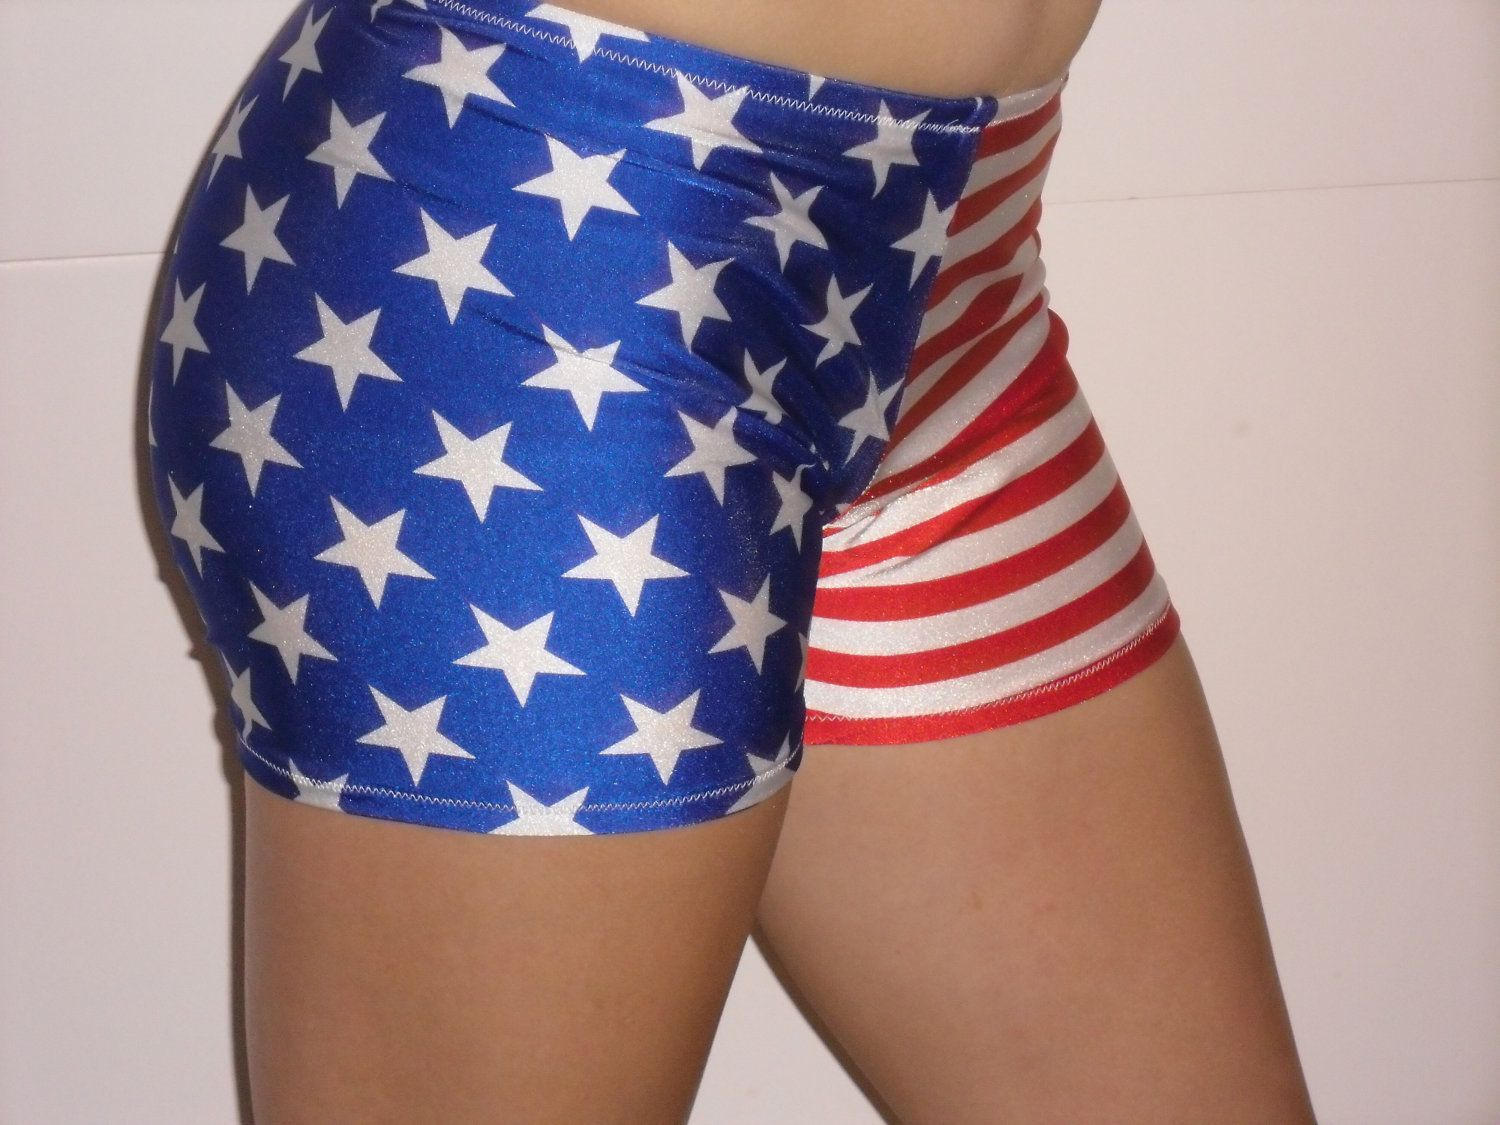 Spandex shorts in red white and blue stars and stripes | Spandex ...